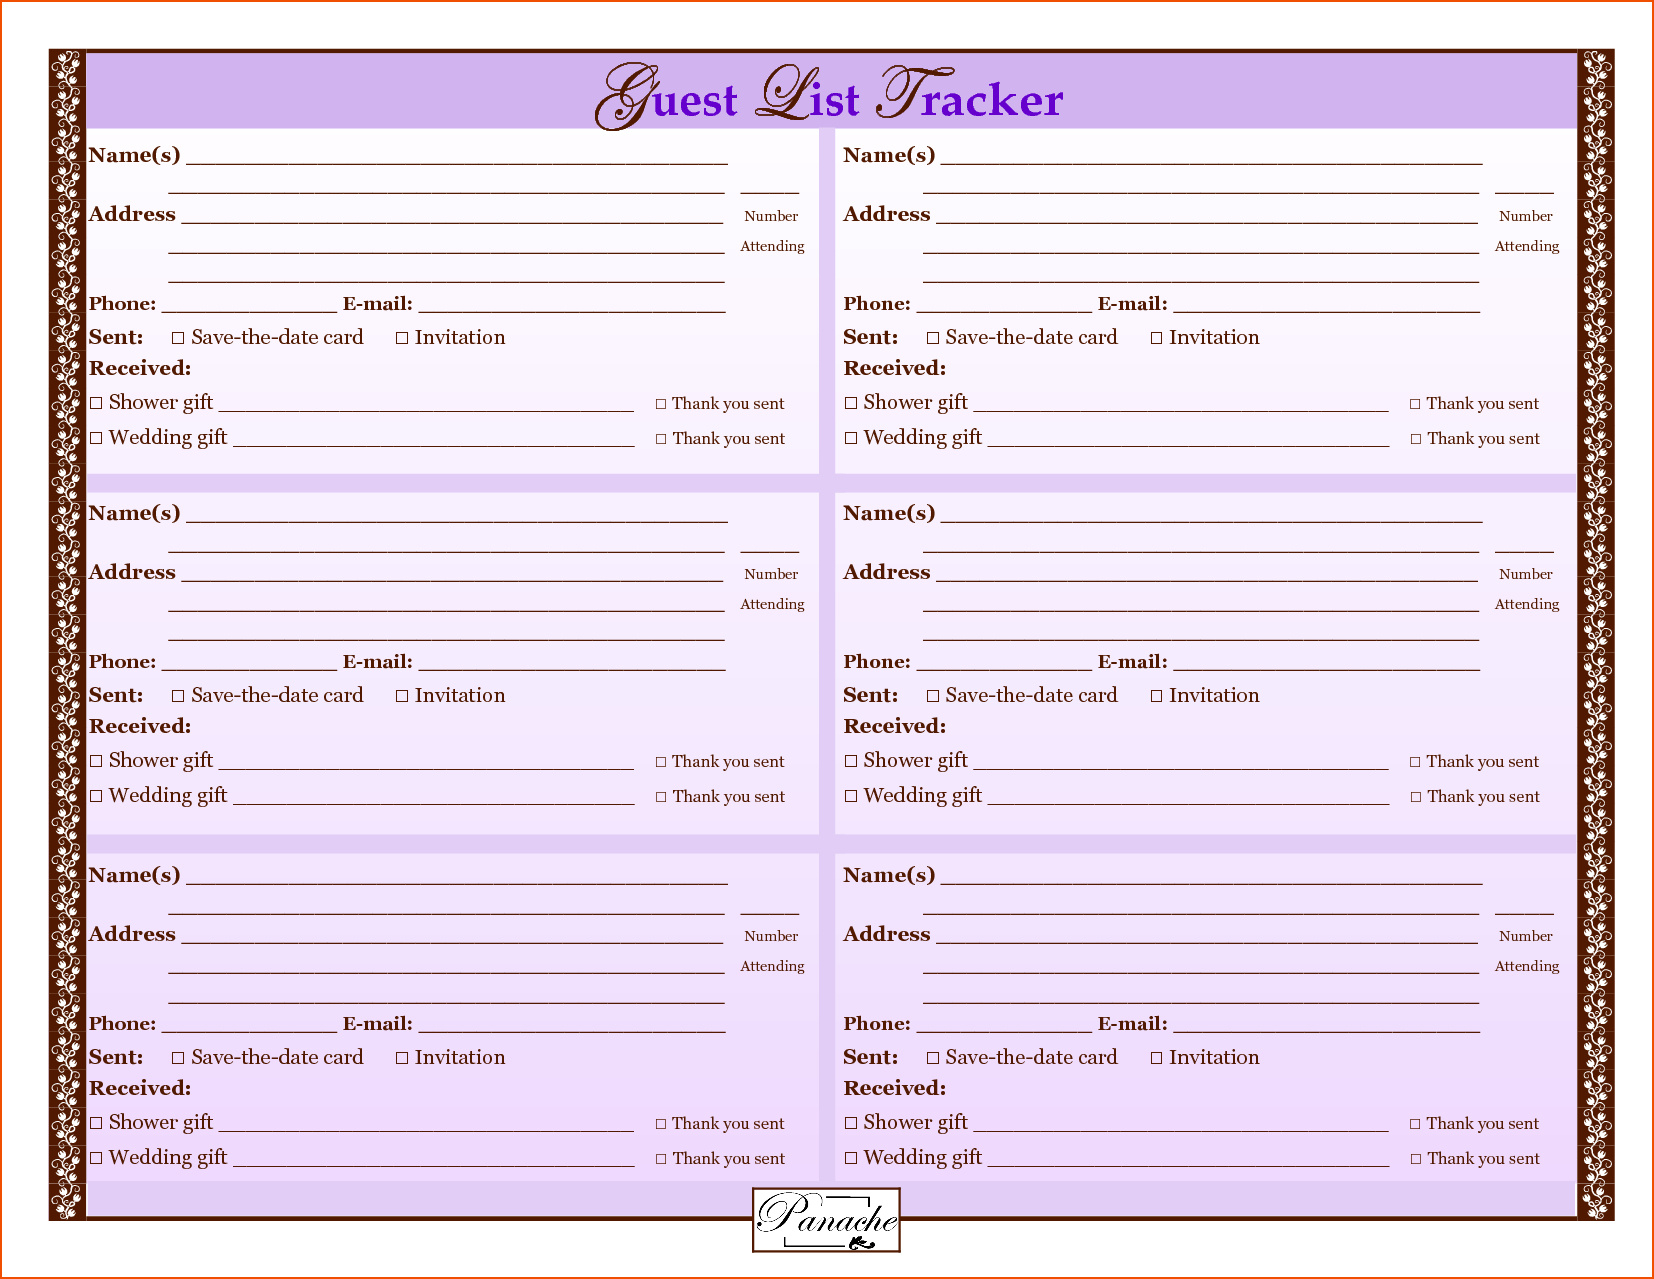 Destination Wedding Planning Spreadsheet Within Christmas List Template Excel Awesome Destination Wedding Planning